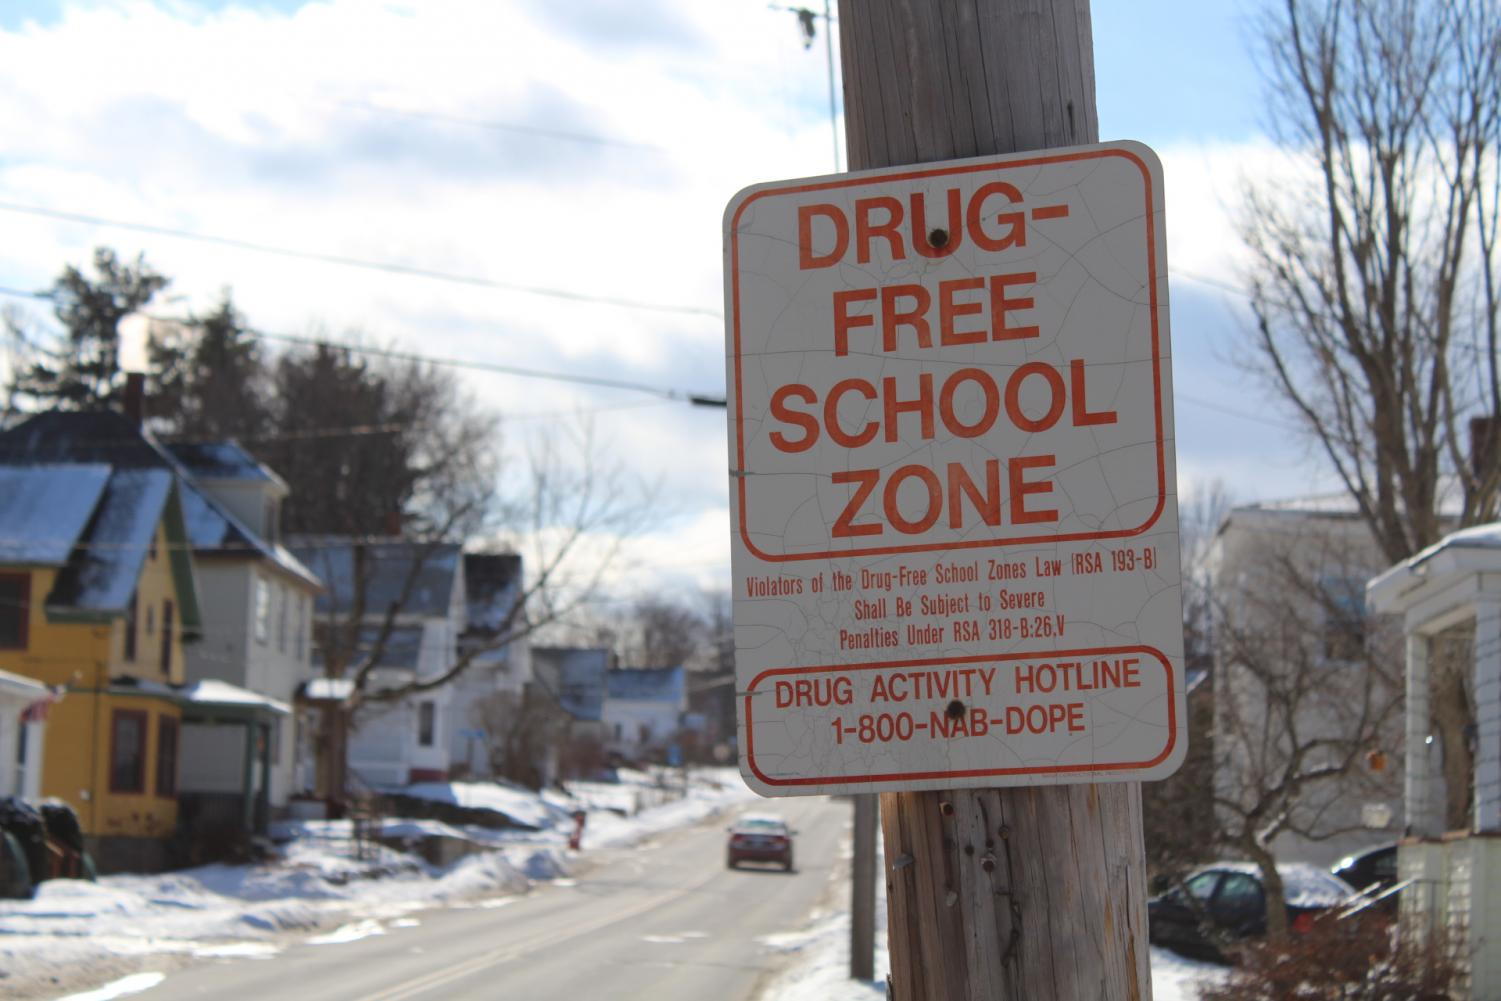 Hillsborough has always been a proponent of a drug-free town.